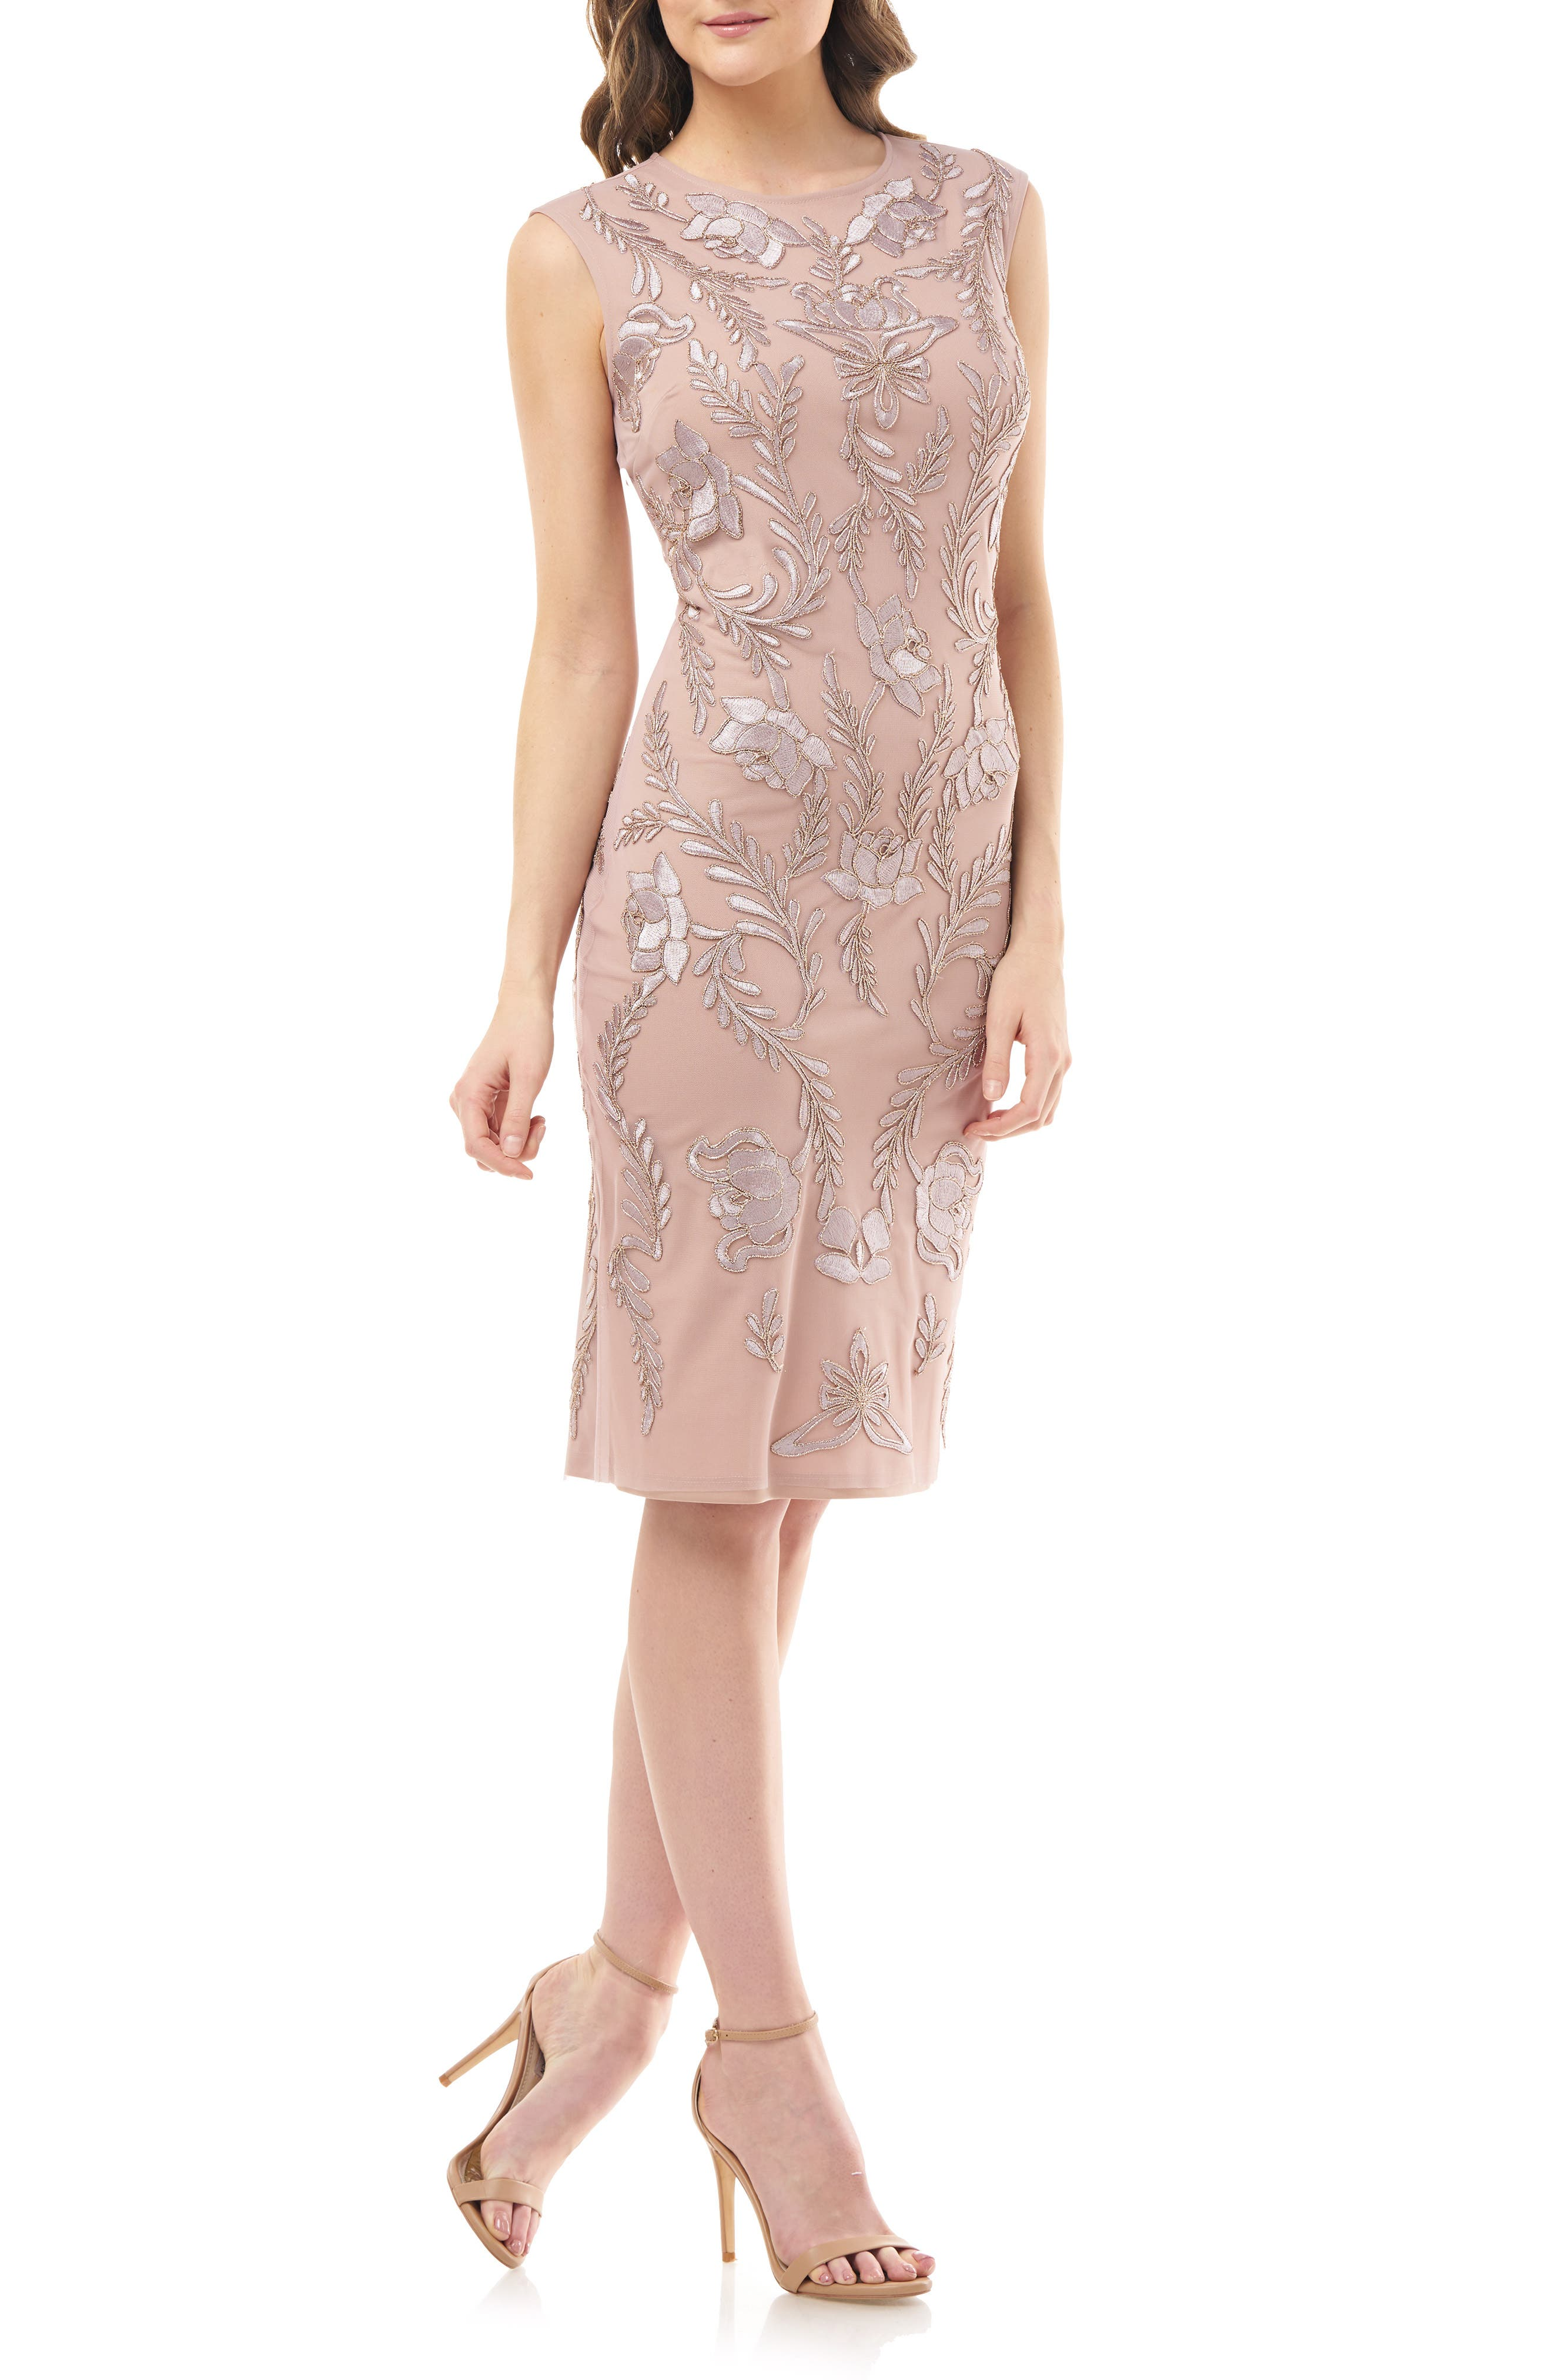 Vintage 1920s Dresses – Where to Buy Womens Js Collections Dori Embroidered Cocktail Dress $288.00 AT vintagedancer.com